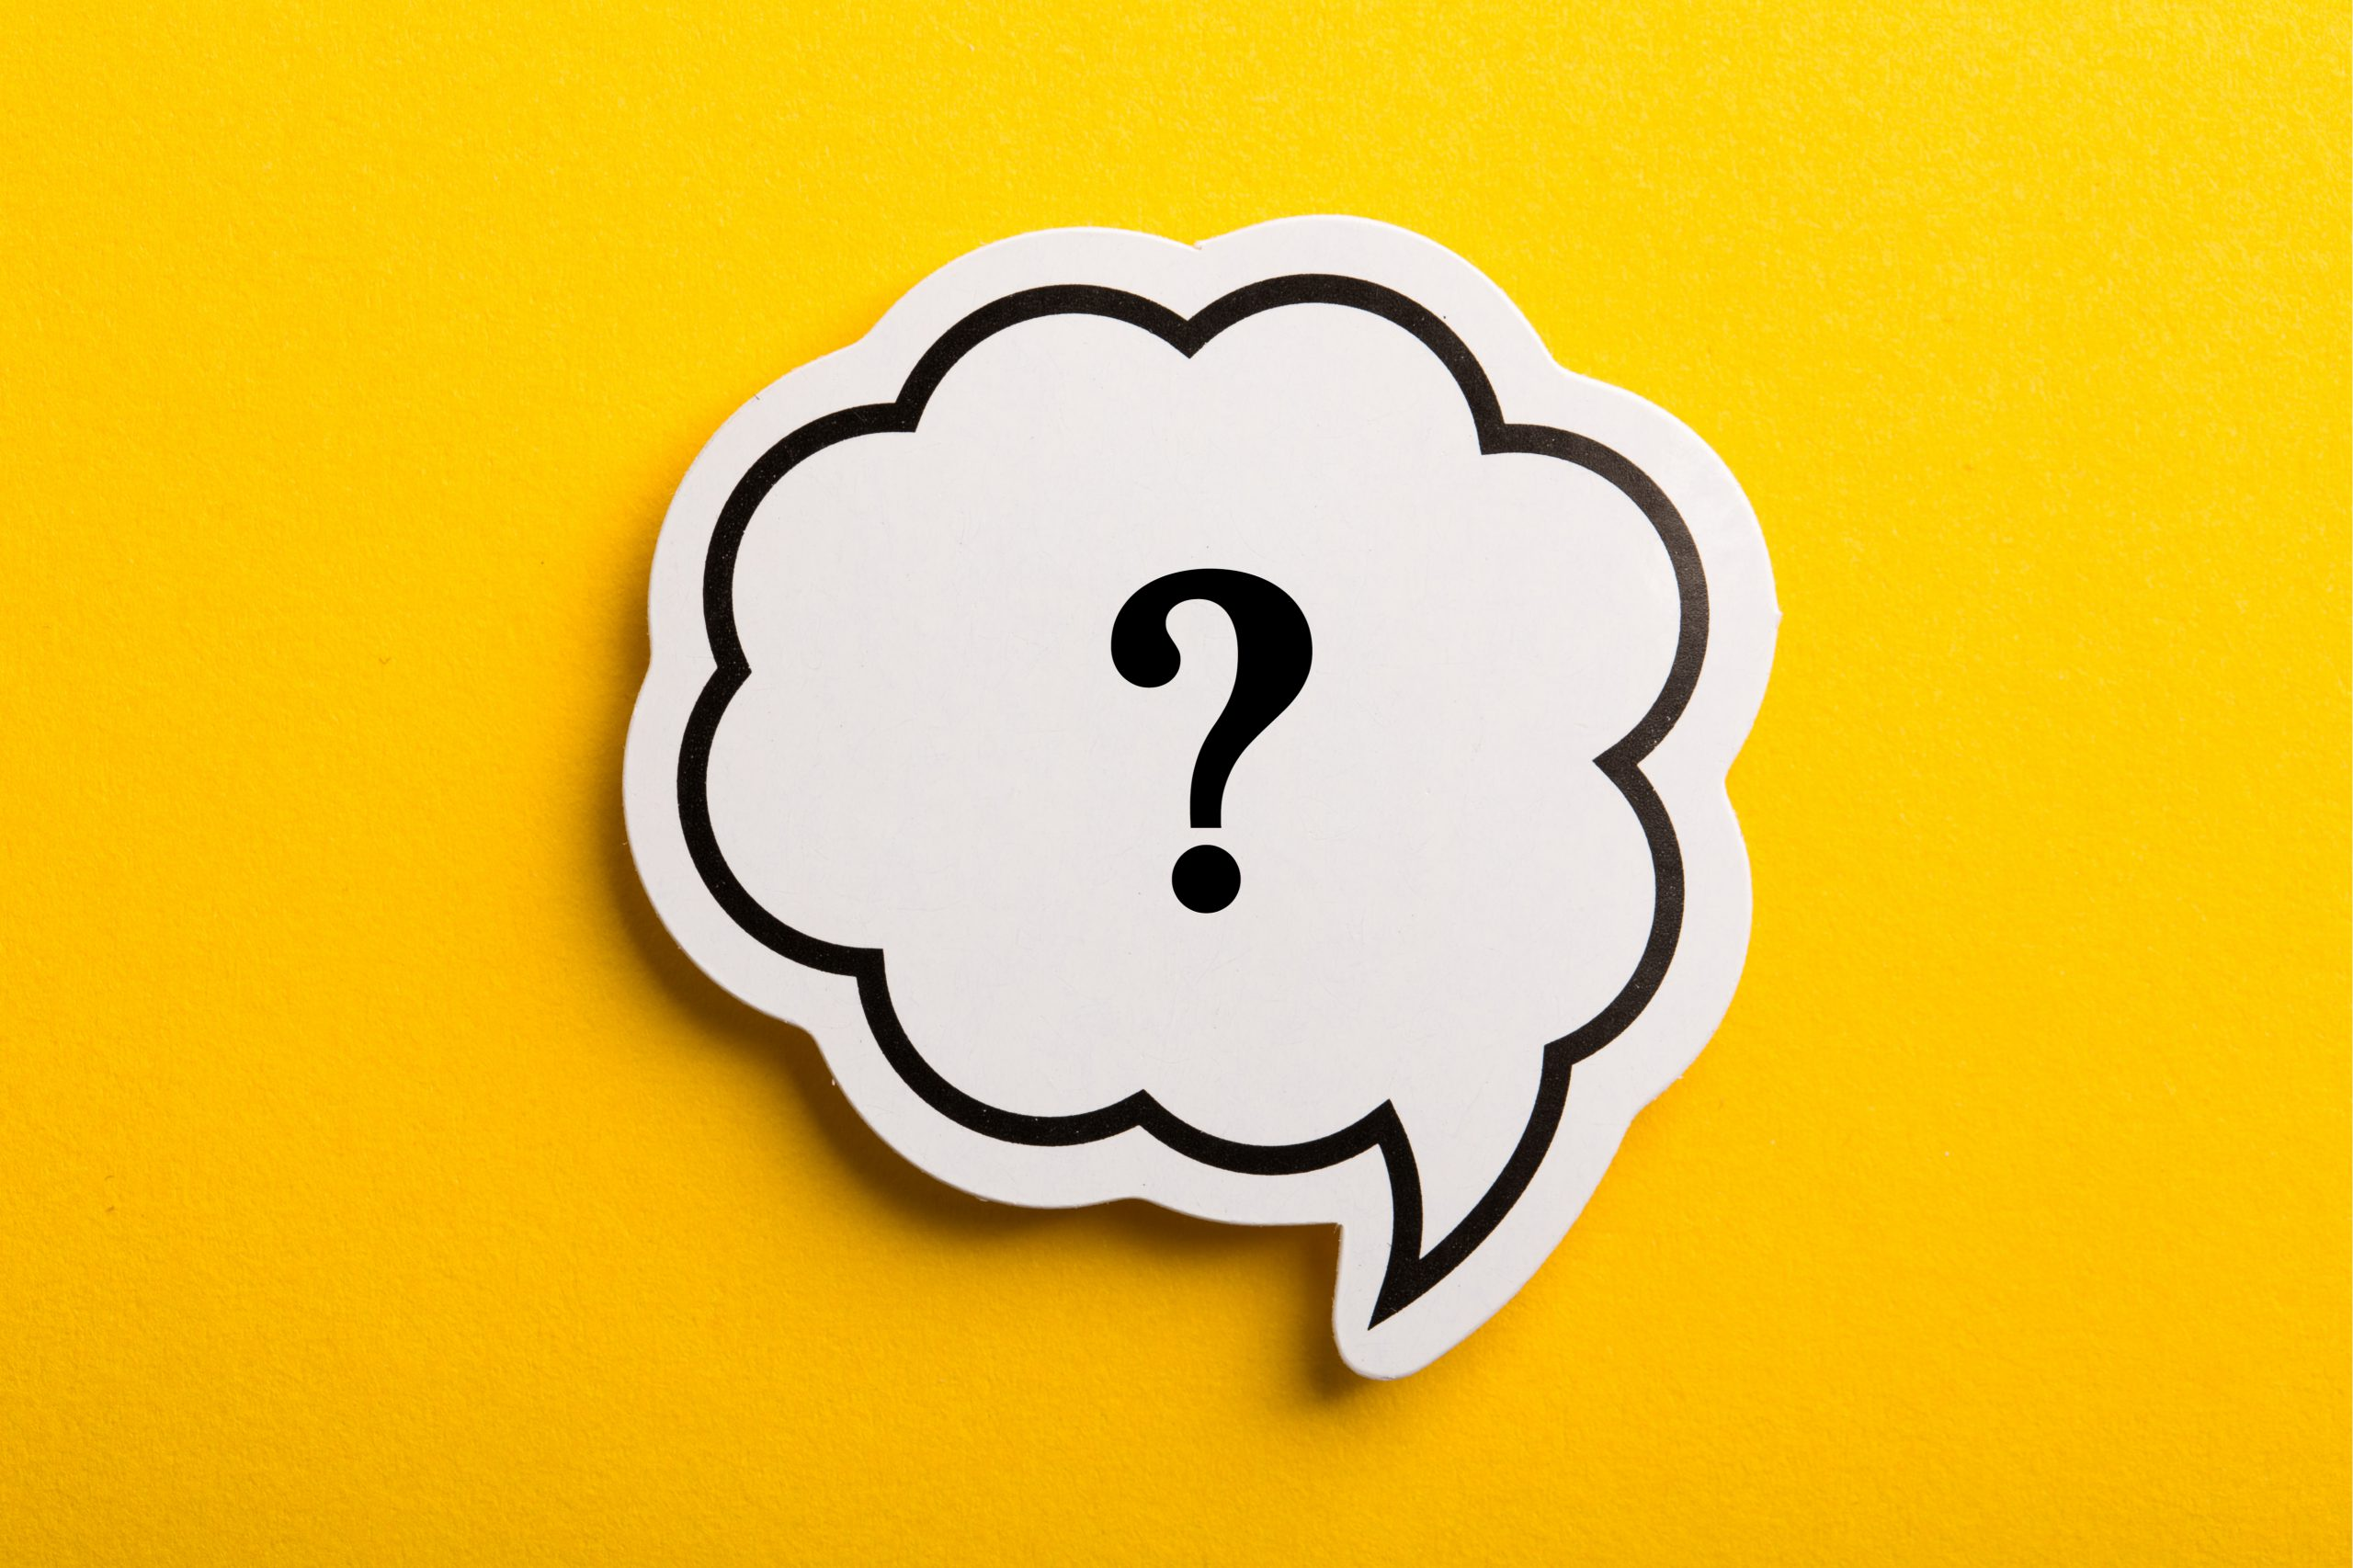 5 questions expats need to ask before making investment changes